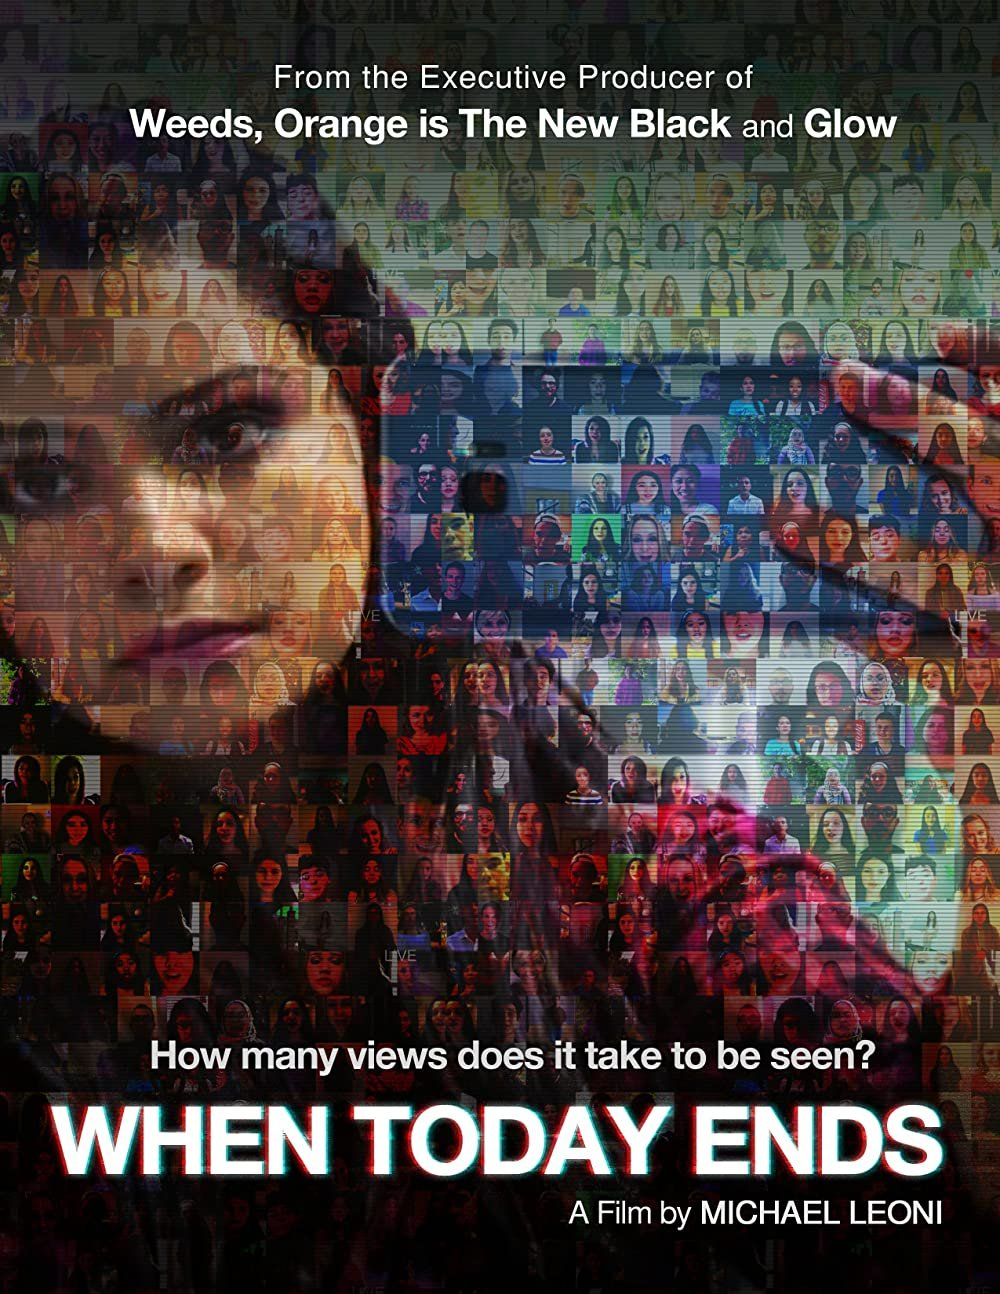 When Today Ends poster image